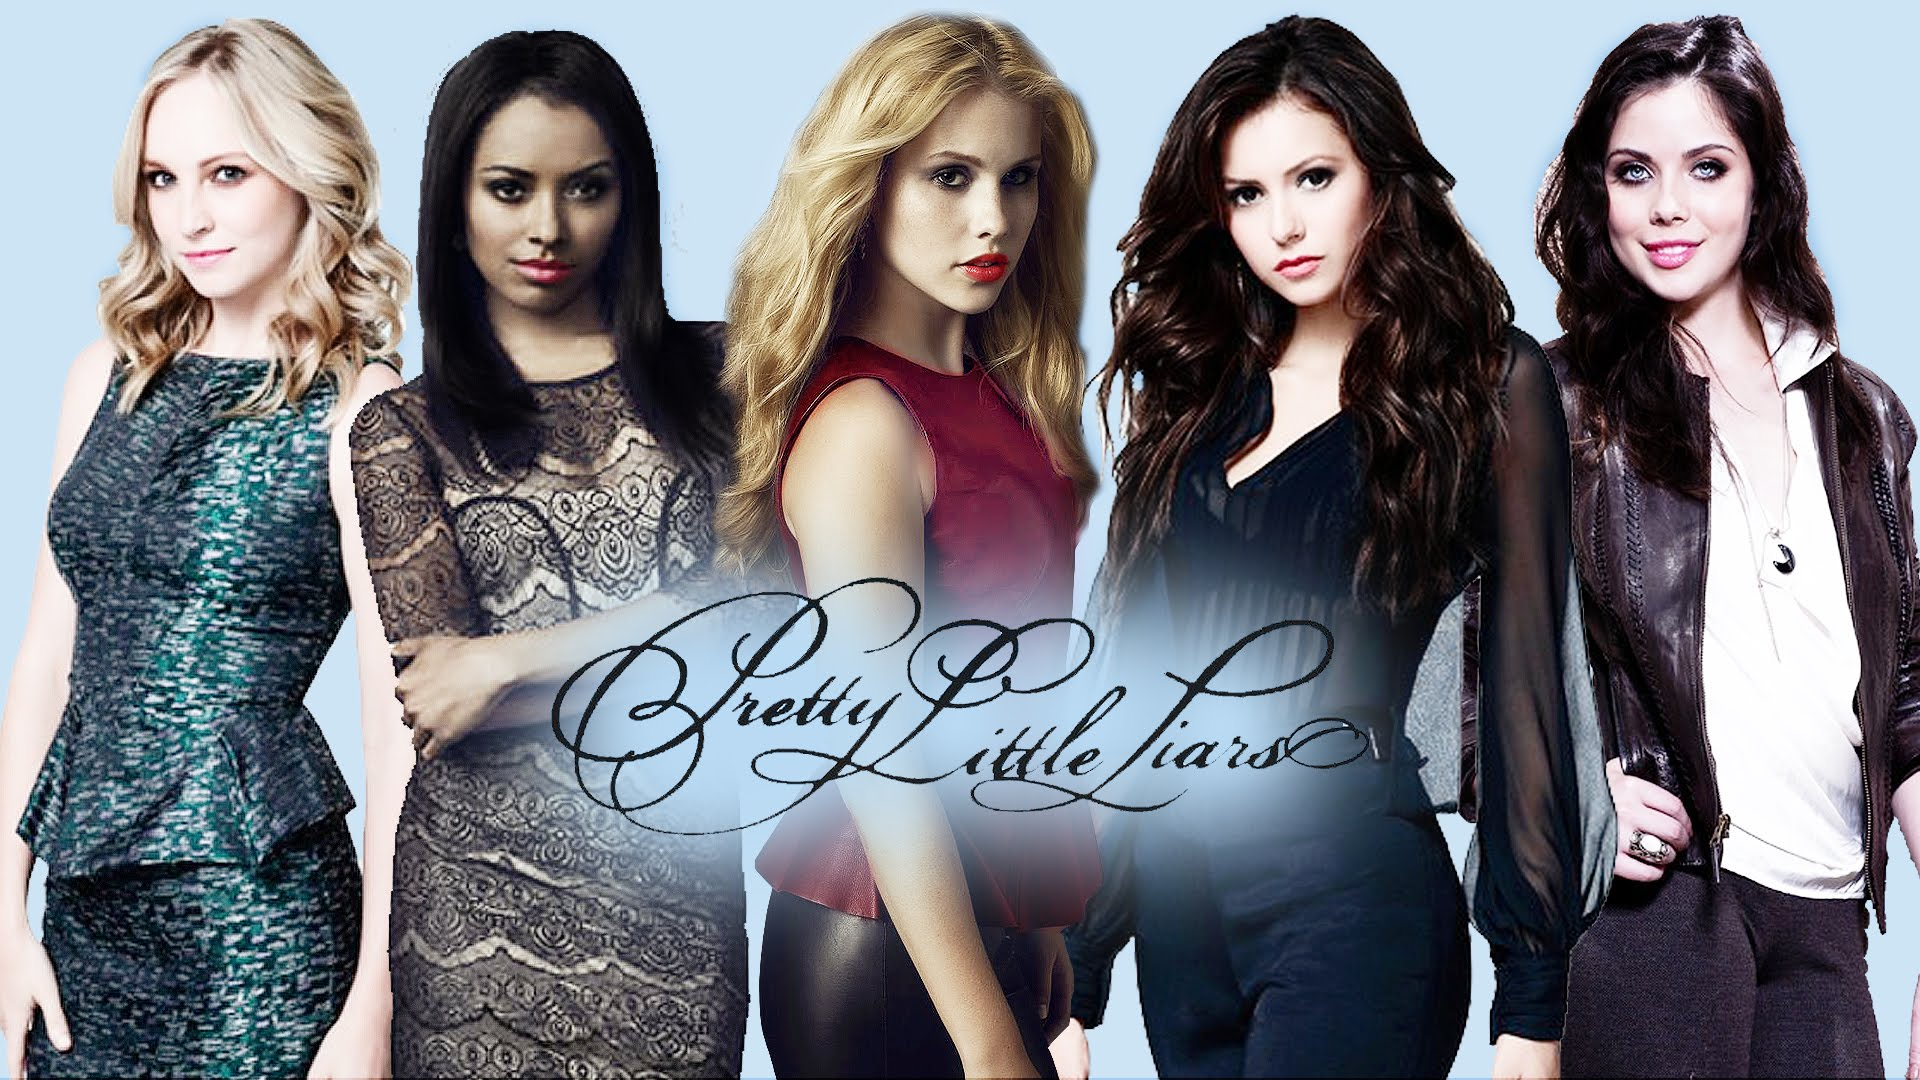 Pretty Little Liars Wallpapers HD Backgrounds 1920x1080